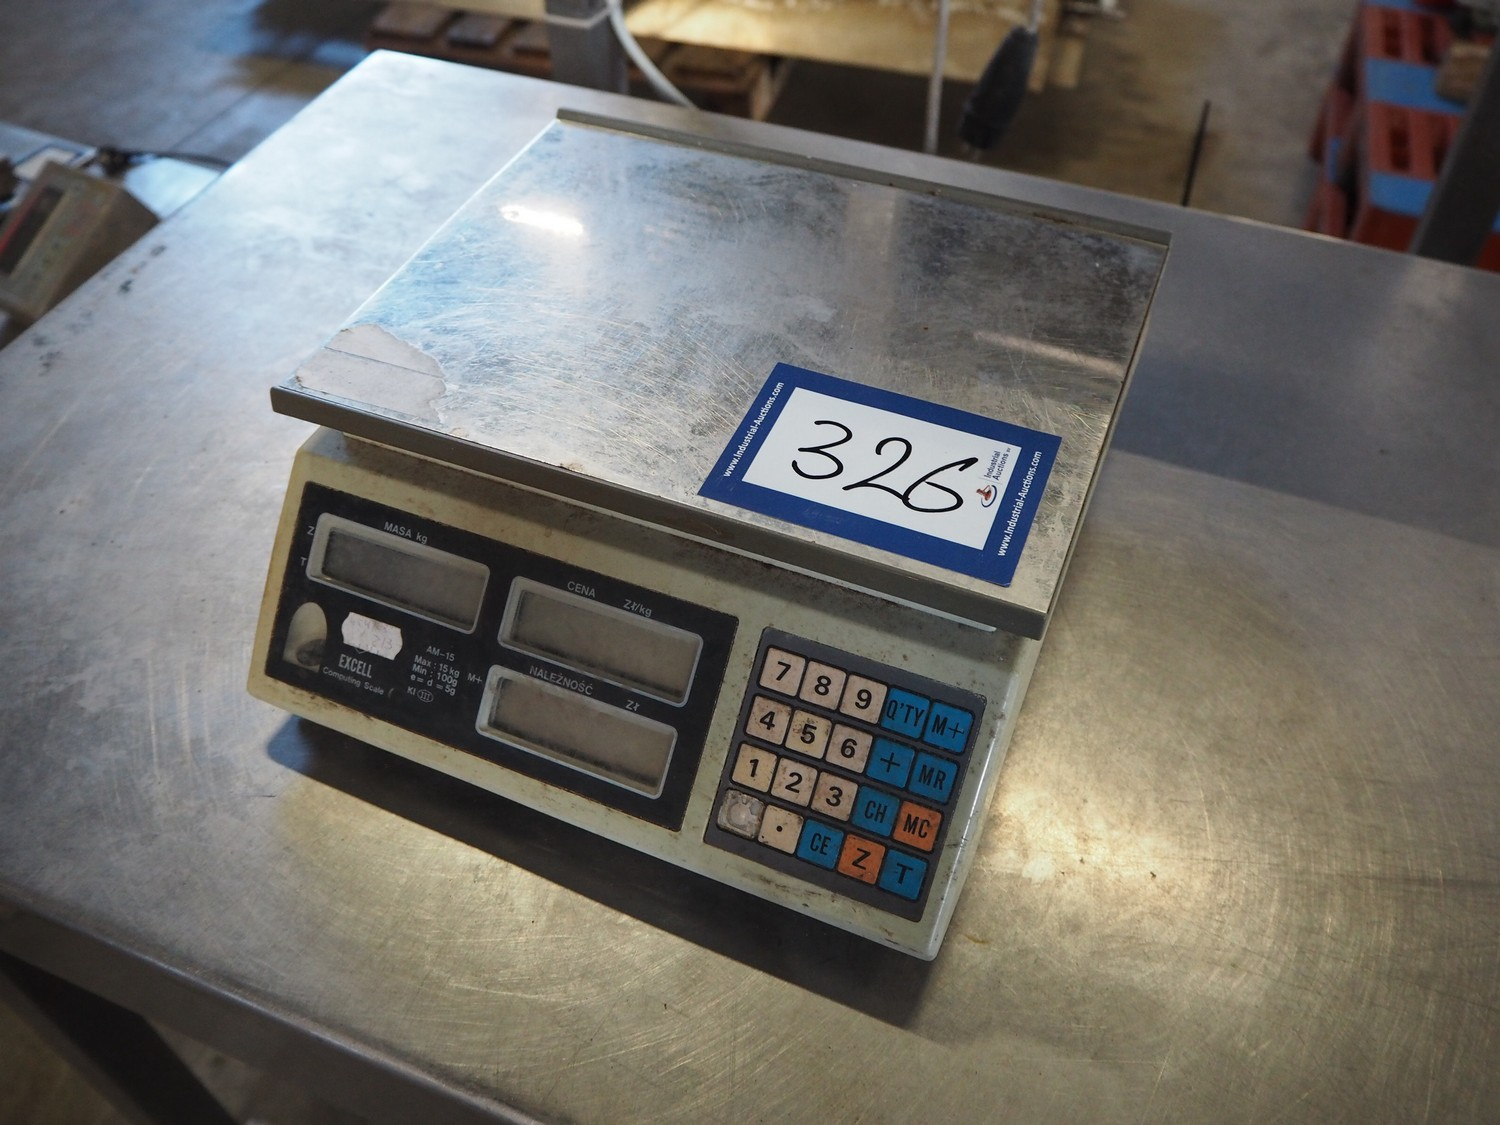 excell weighing scales slaughtering technology online auction